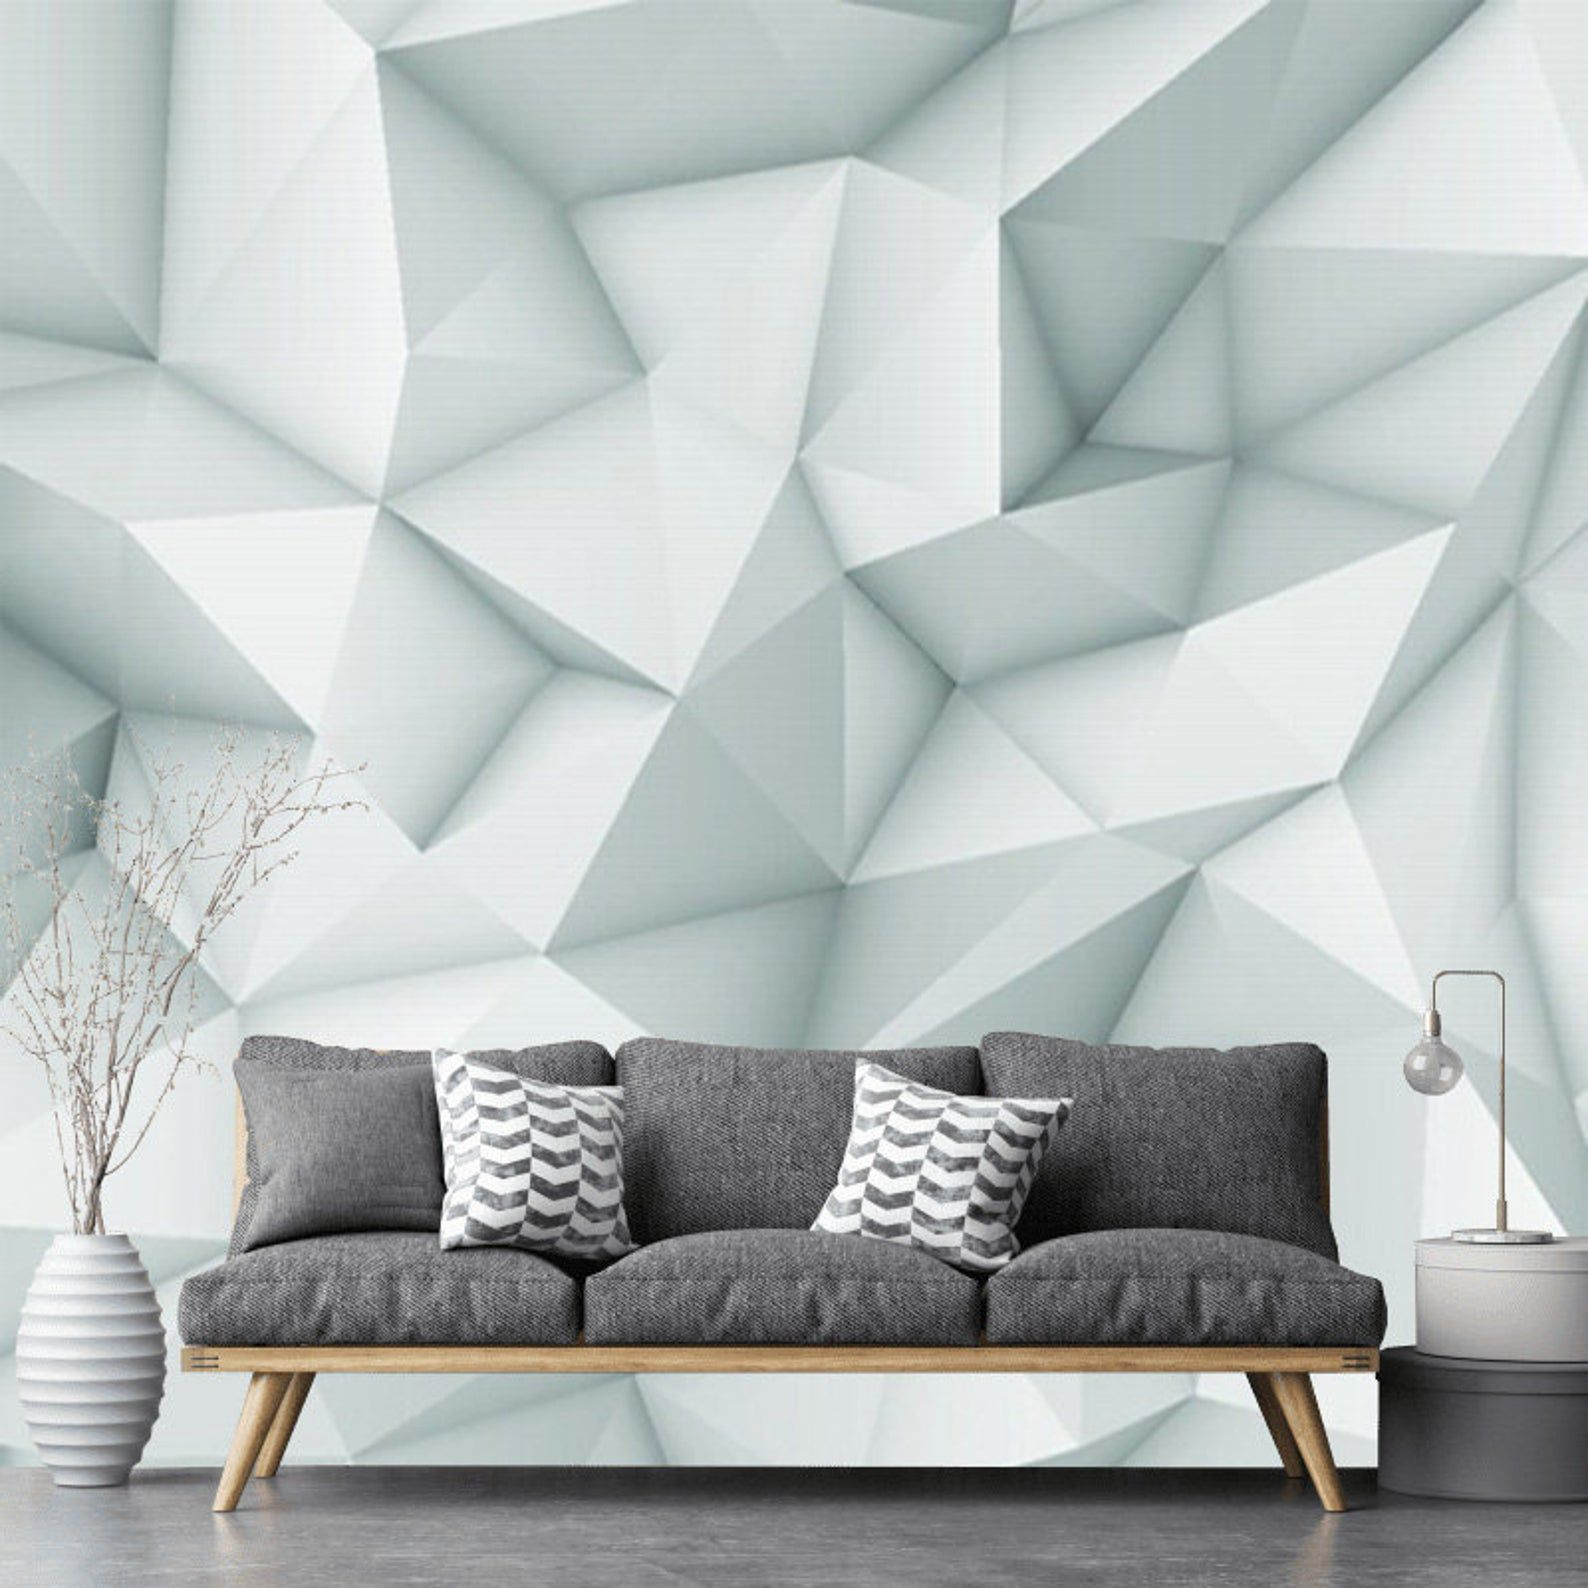 Modern Removable Geometric 3d Wallpaper Mural Peel And Stick Etsy In 2020 Modern Wallpaper Accent Wall Geometric Wallpaper Wallpaper Accent Wall